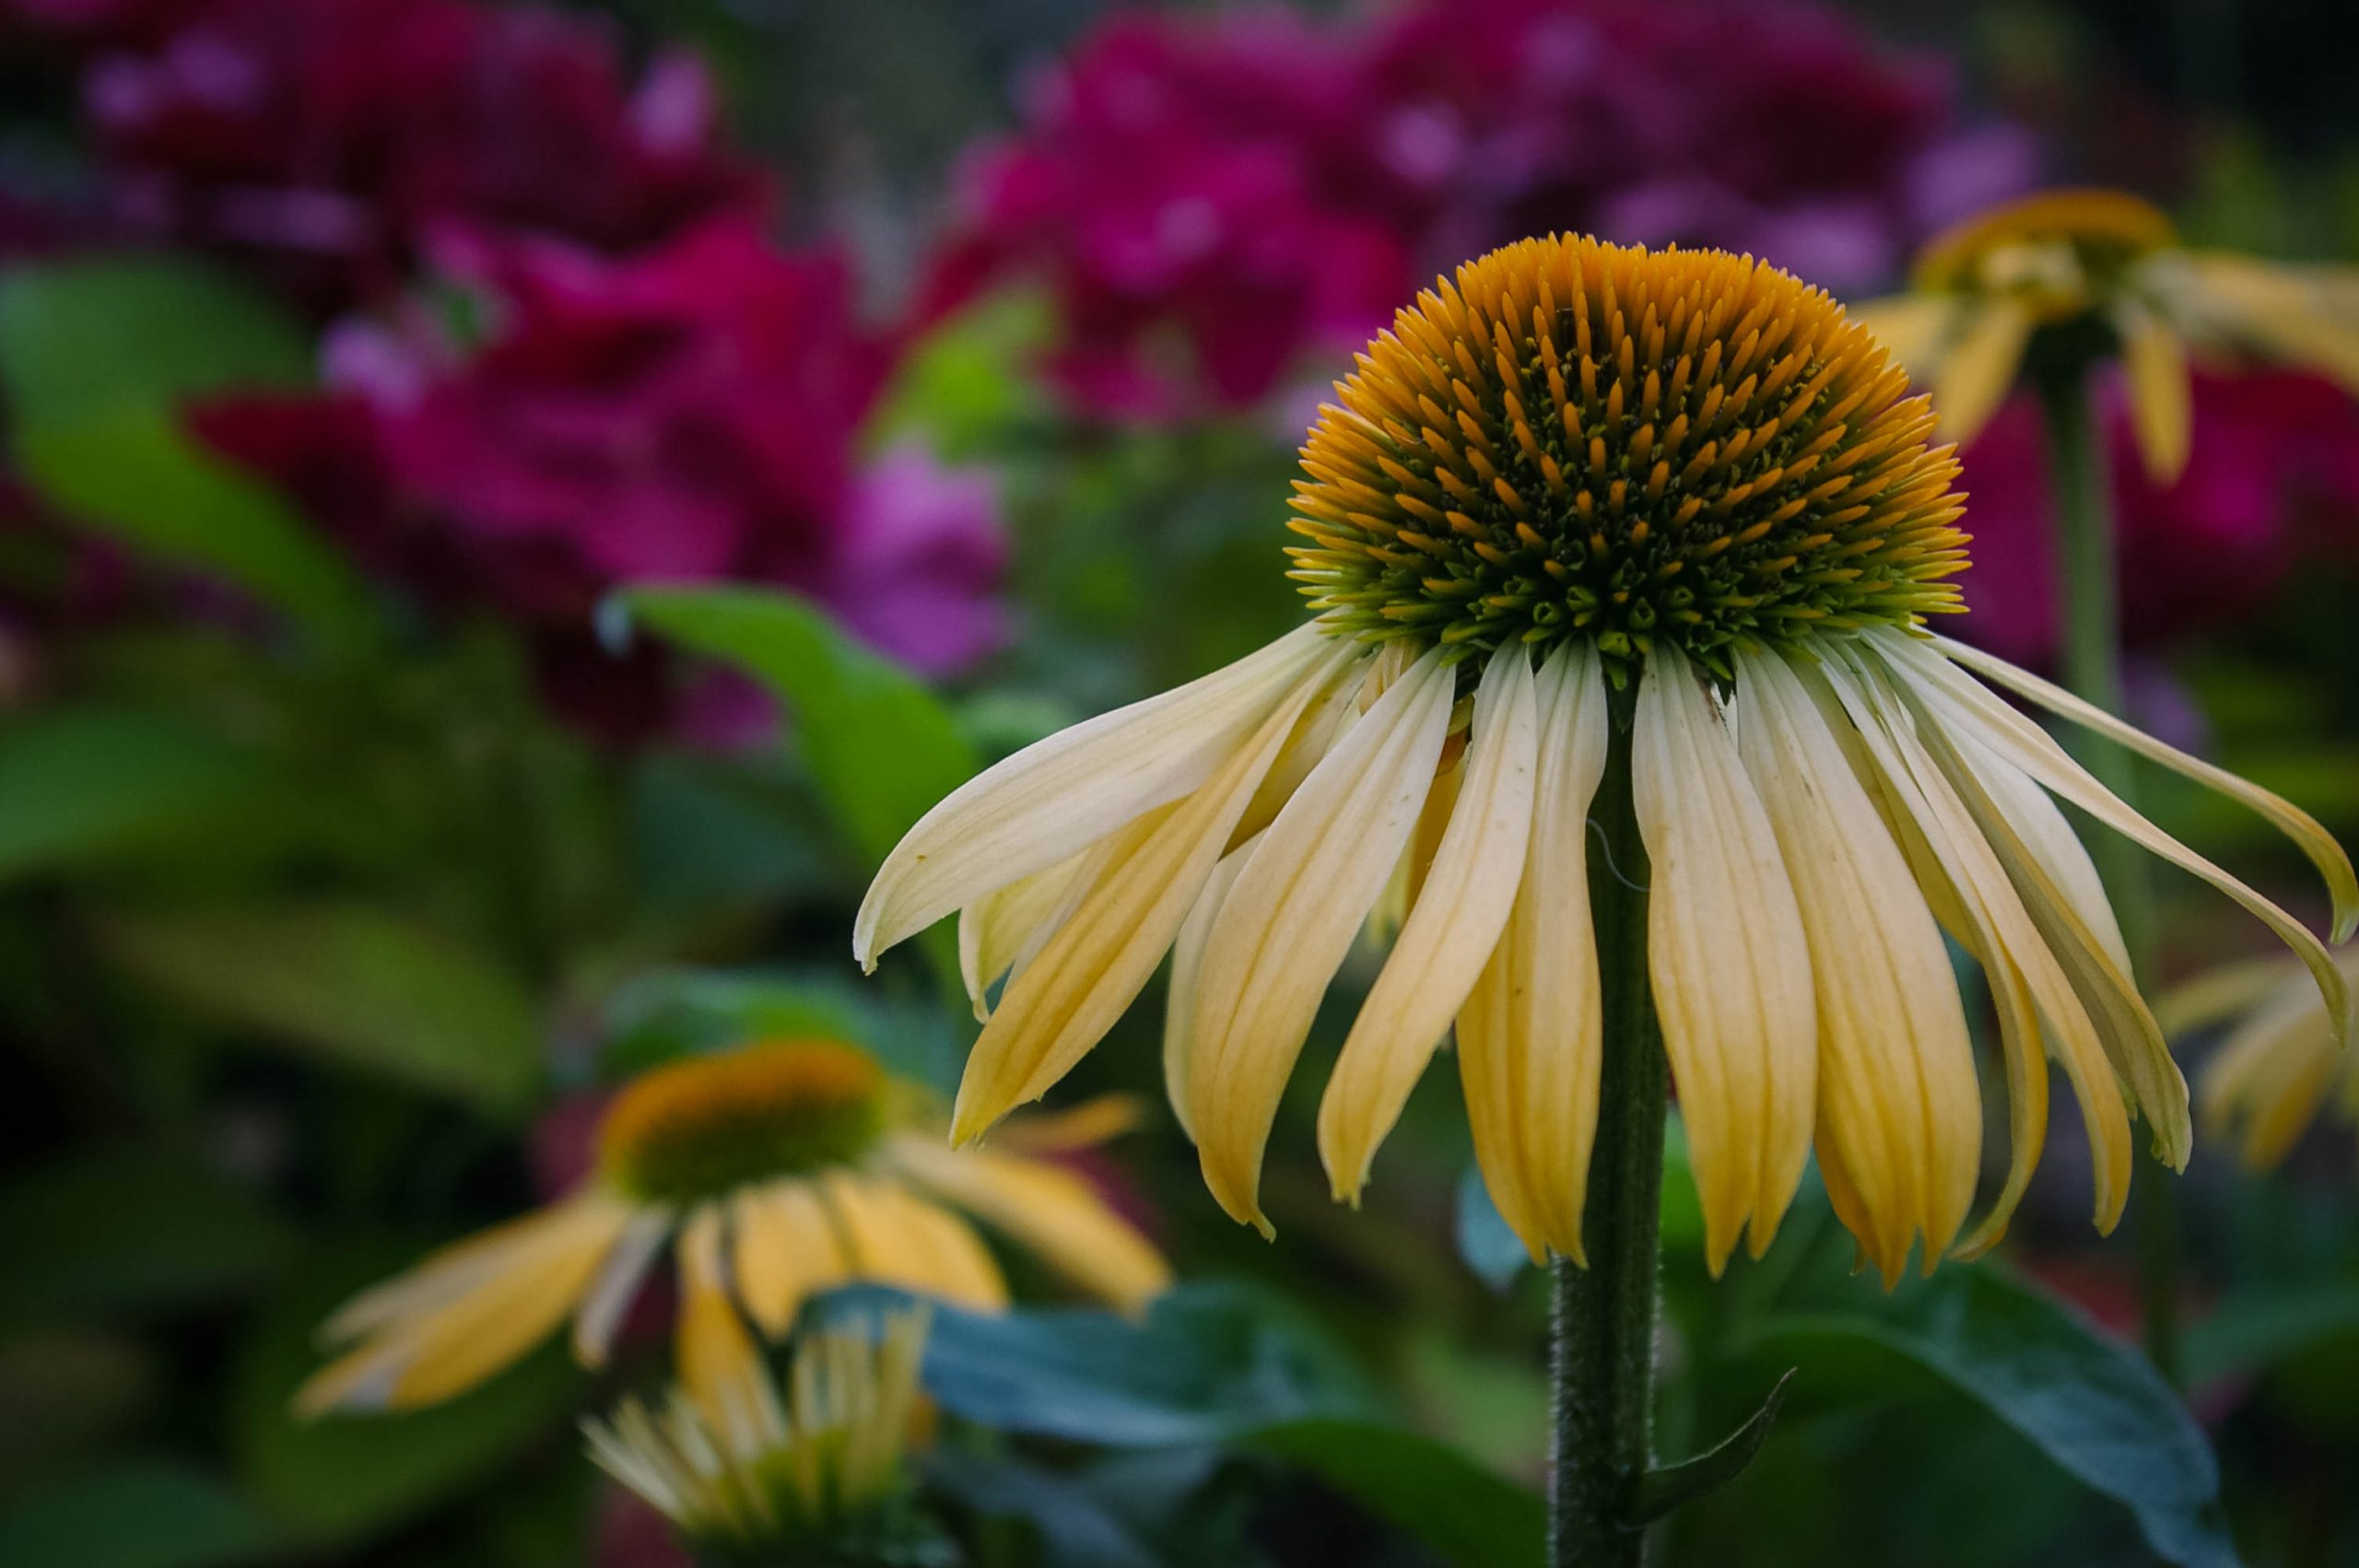 floral-yellow-daisy-fiona-madden-photography